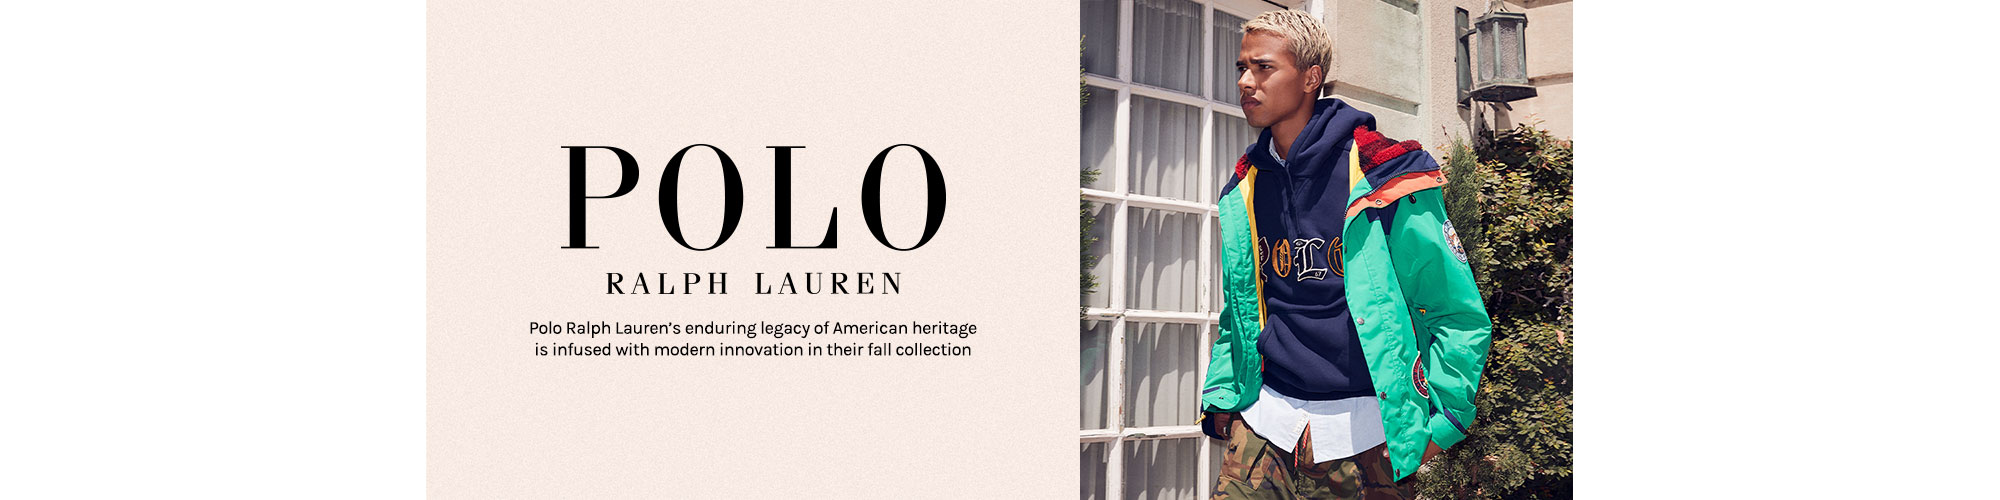 Polo Ralph Lauren. Polo Ralph Lauren\u2019s enduring legacy of American heritage is infused with modern innovation in their fall collection. Shop Polo Ralph Lauren